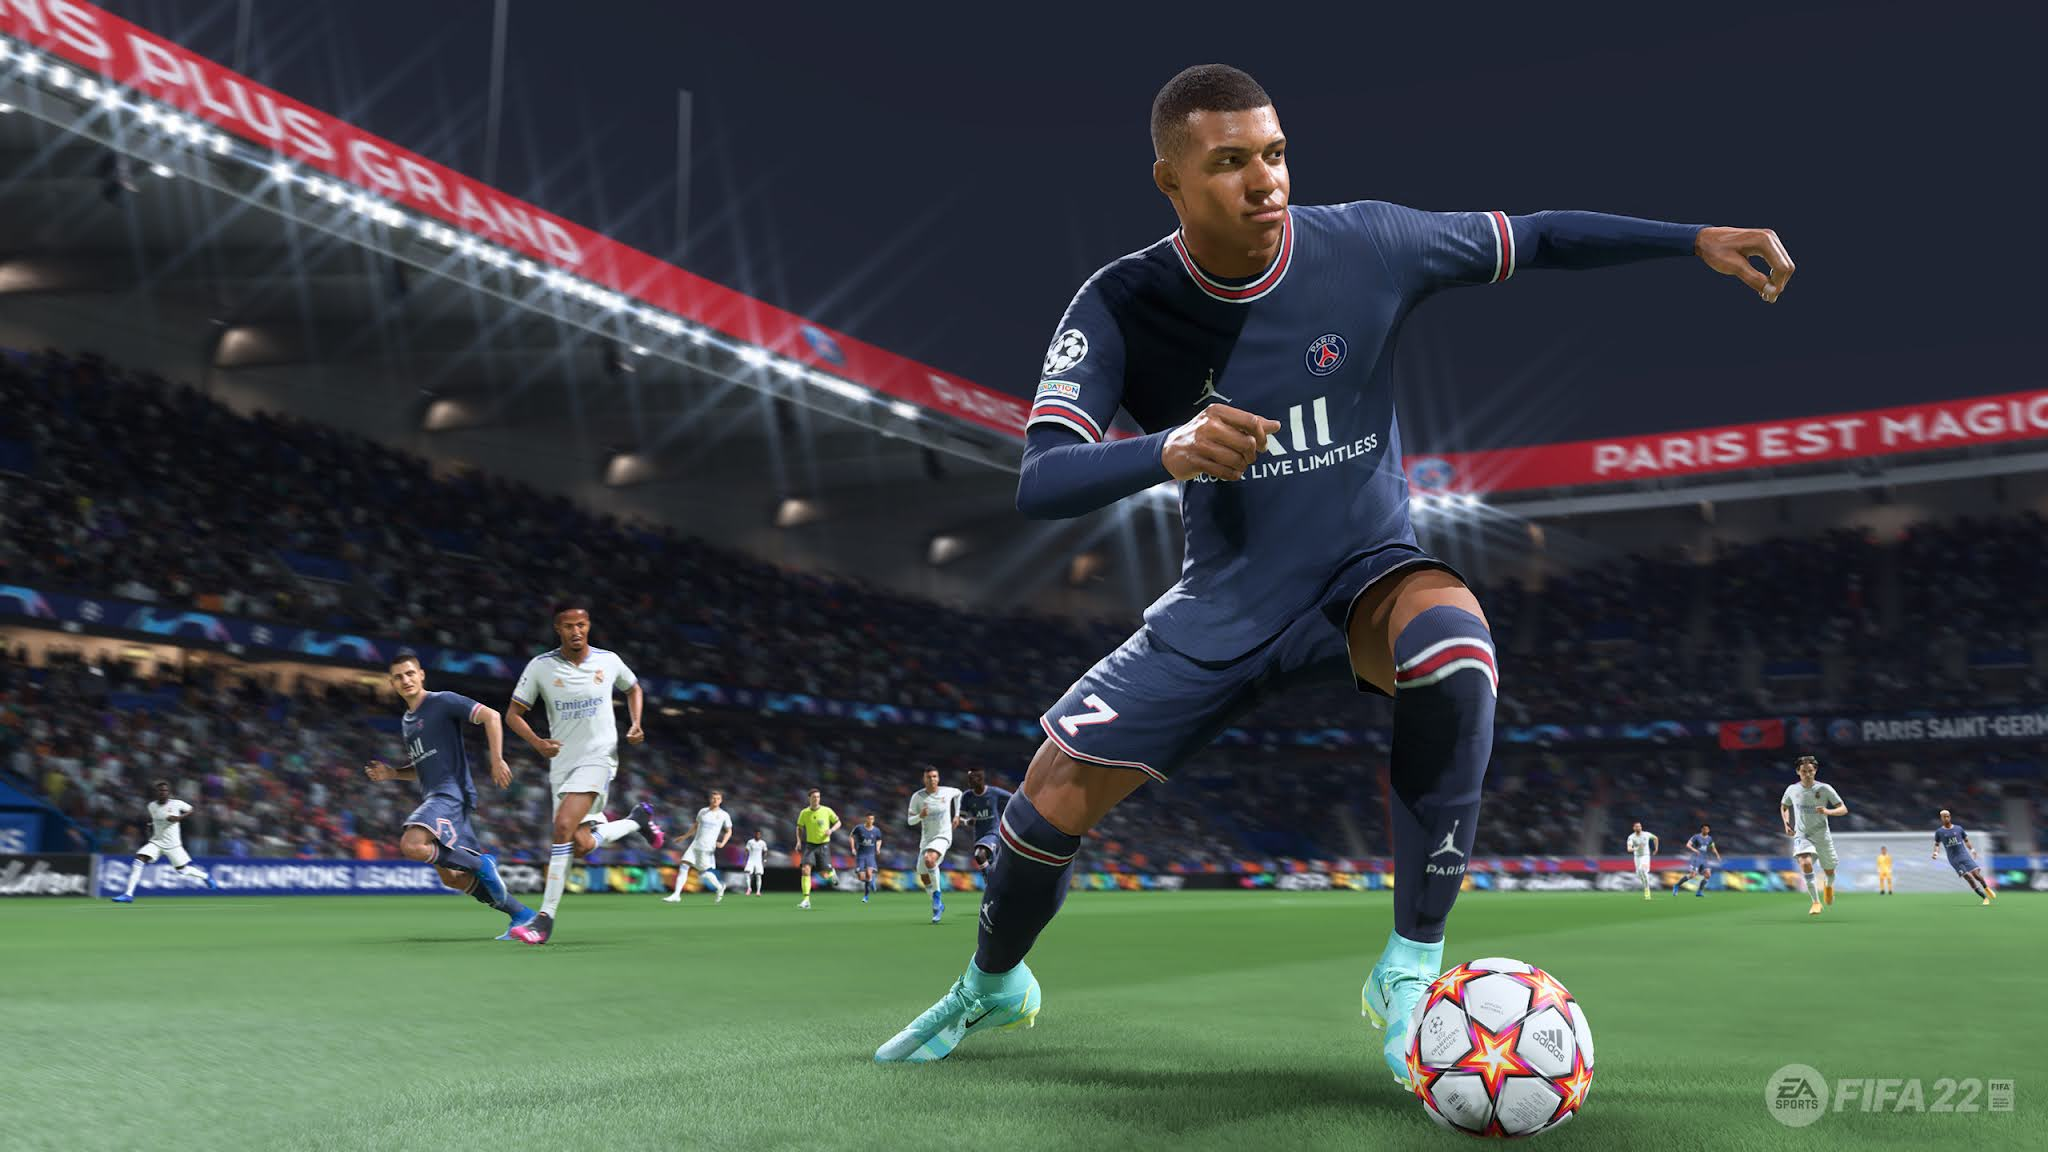 FIFA 22: OTW Tracker - These players can get upgrades